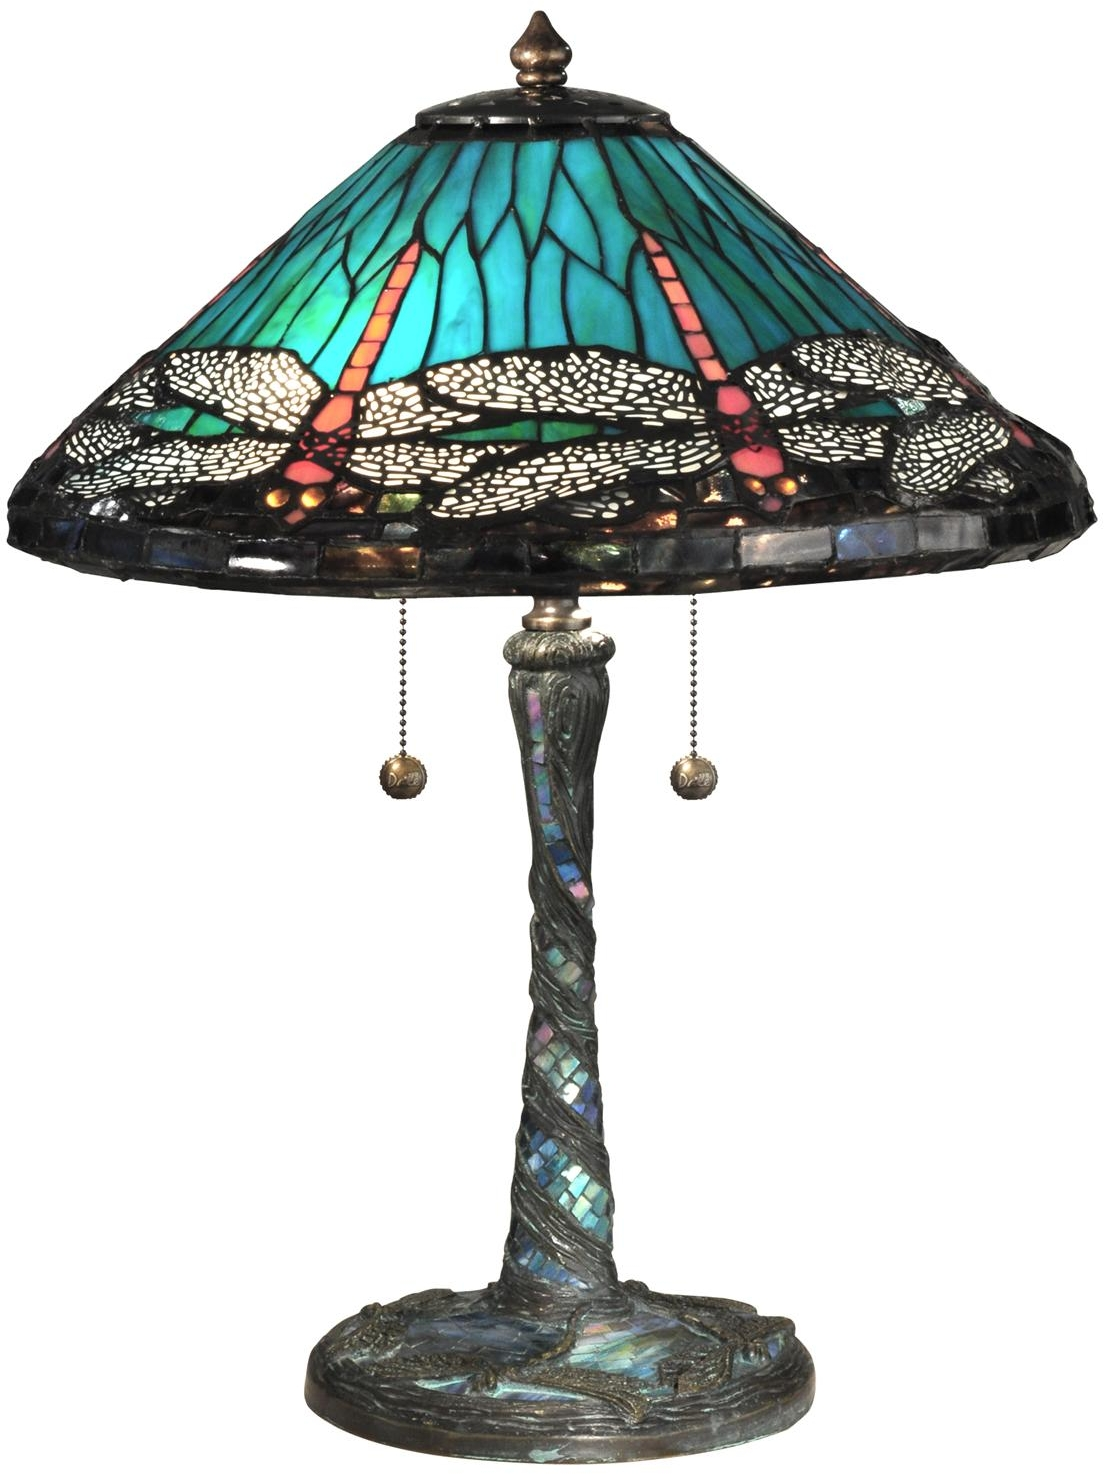 new dale tiffany lamp blue cone dragonfly table lamp glass antique. Black Bedroom Furniture Sets. Home Design Ideas